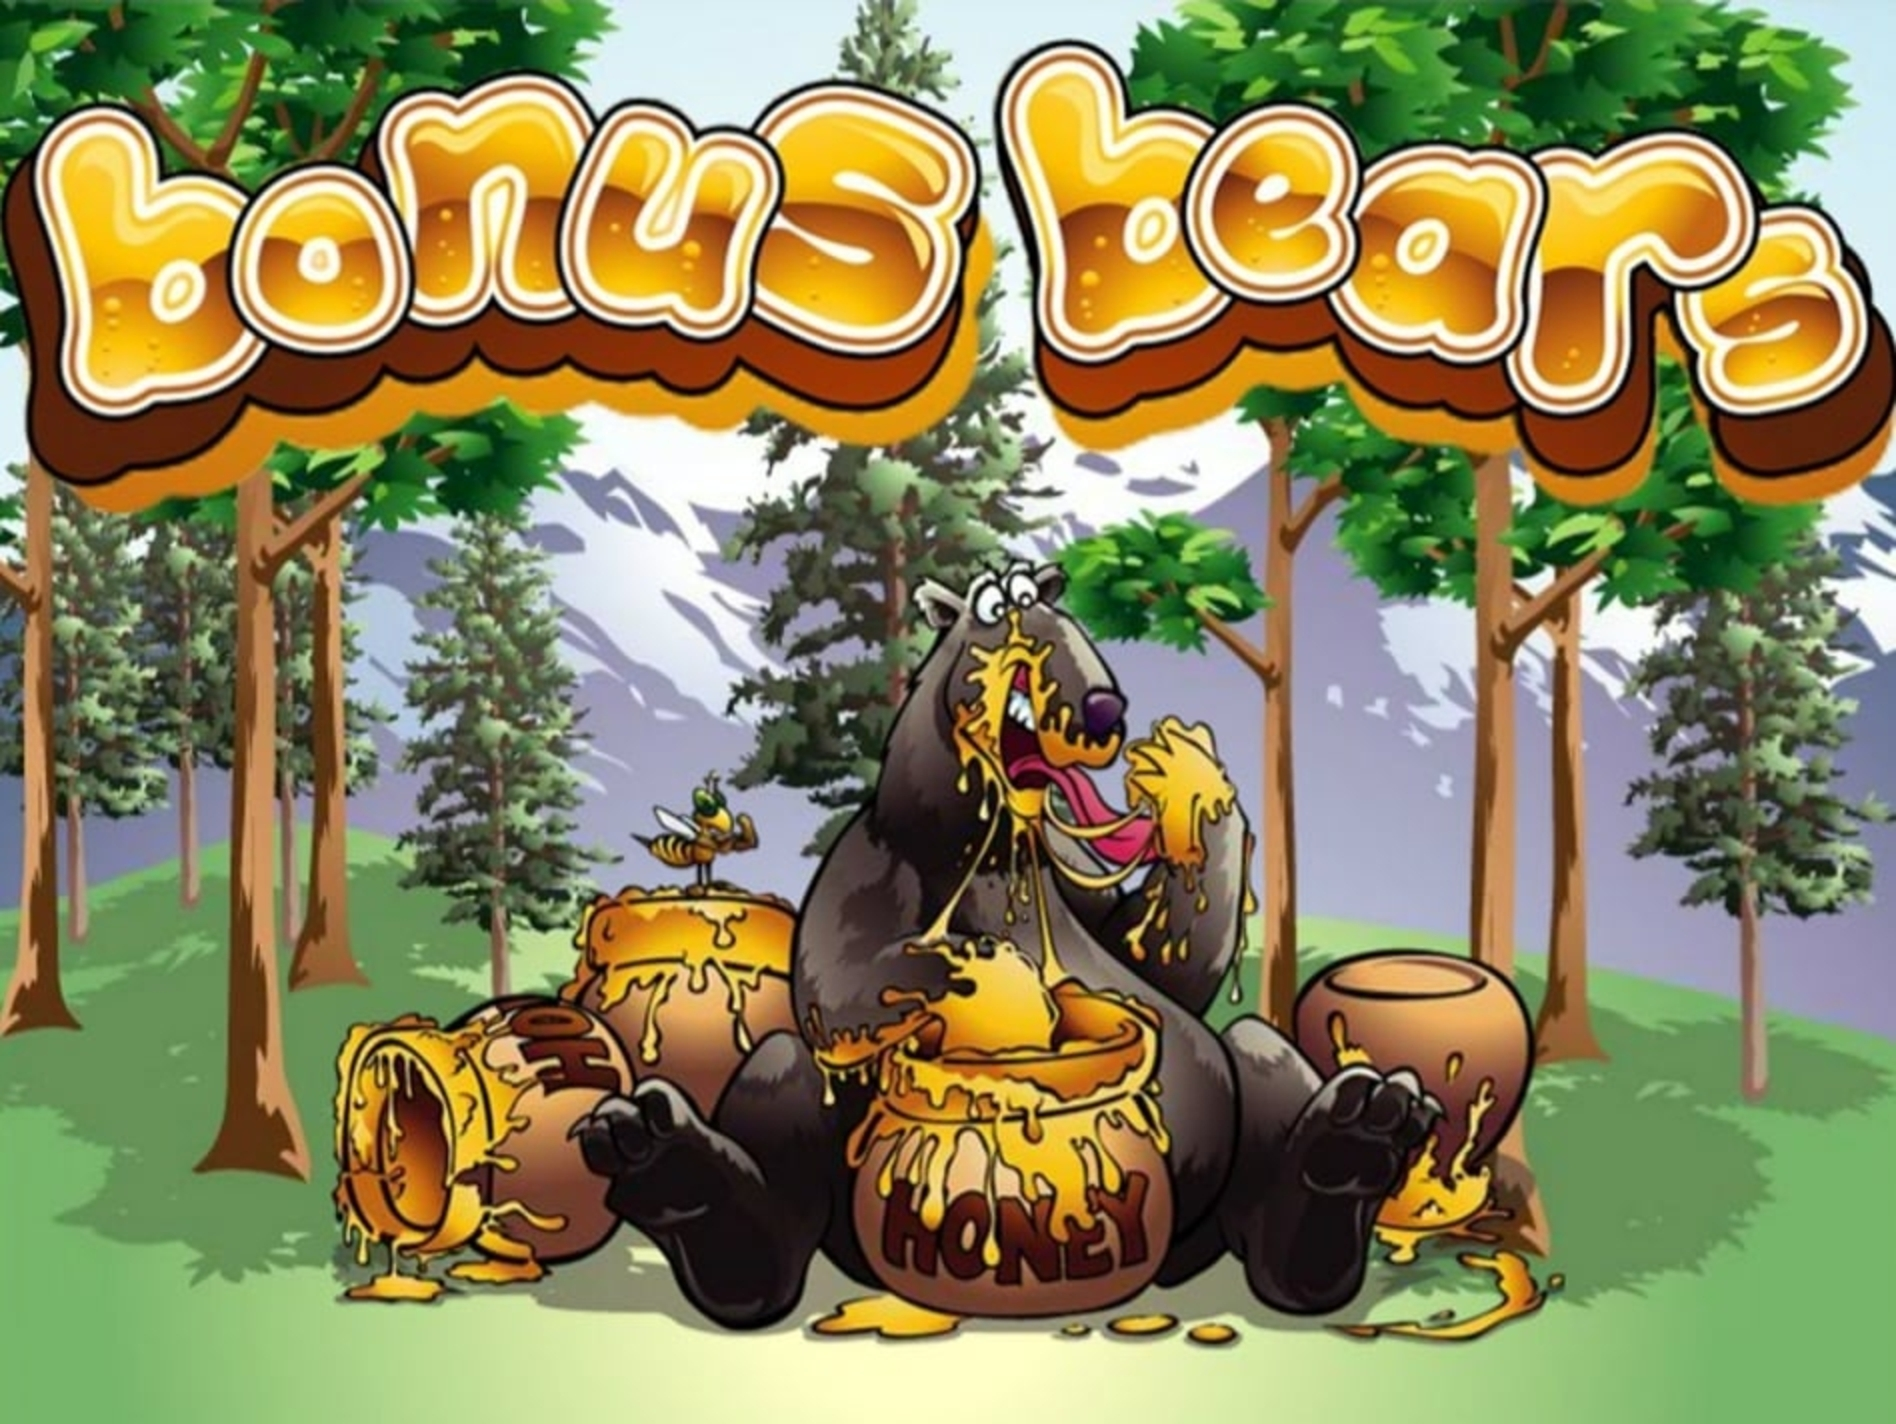 Se Bonus Bears Online Slot Demo Game, Playtech